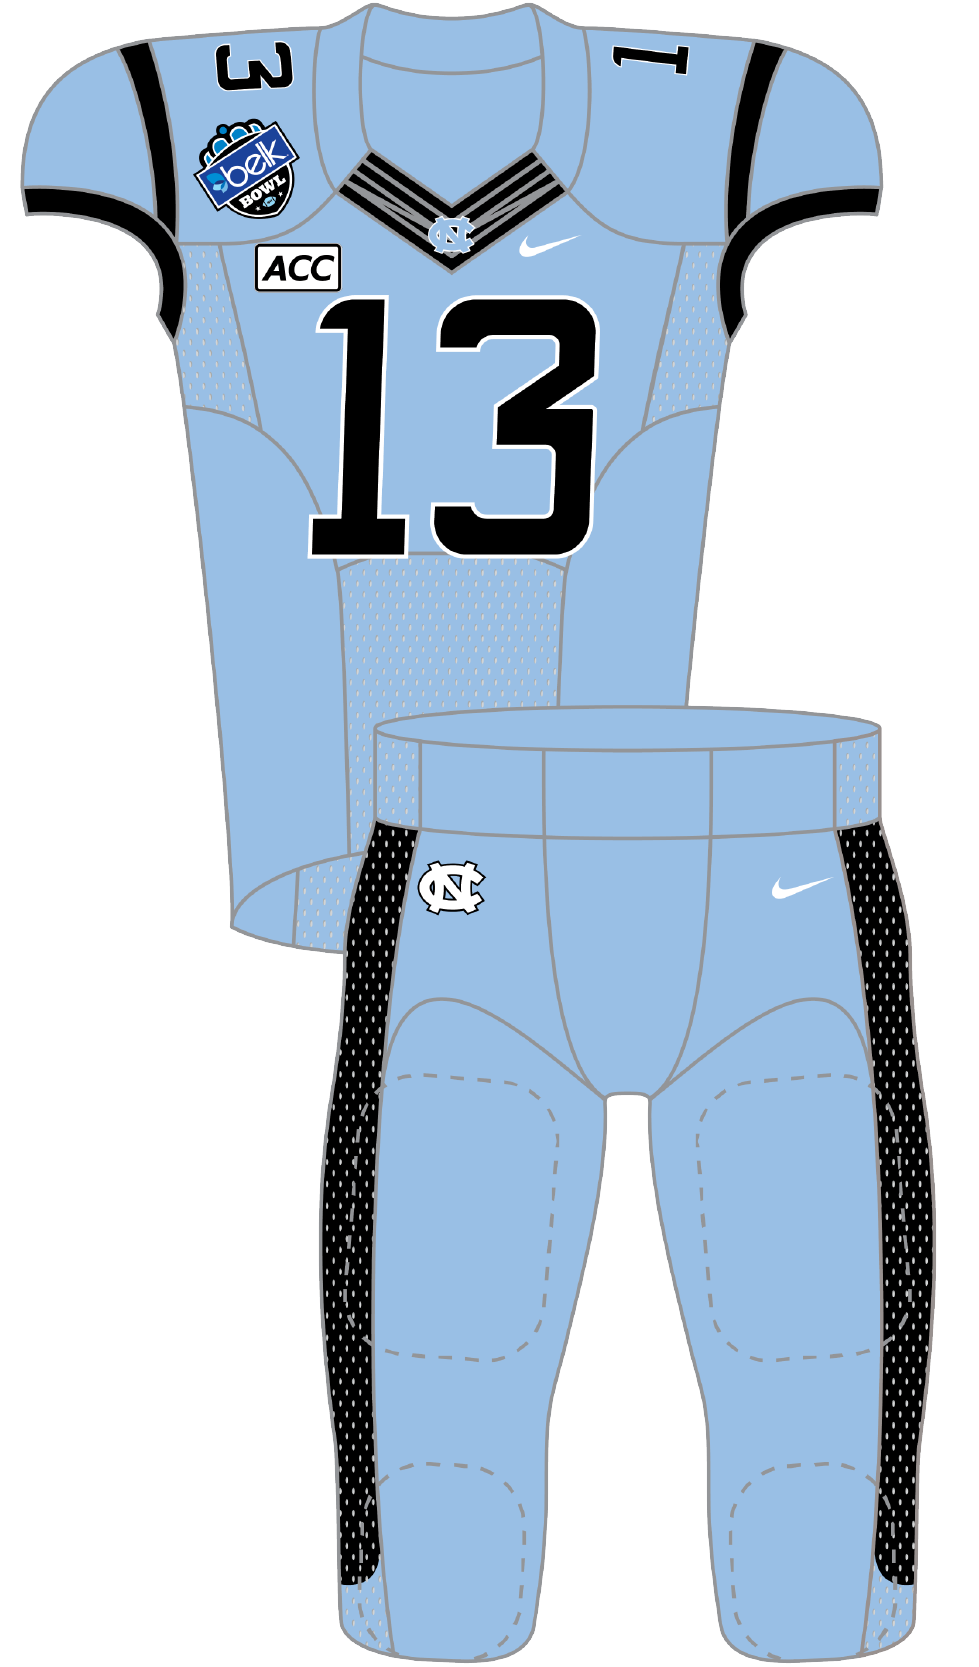 North Carolina 2013 Blue Uniform